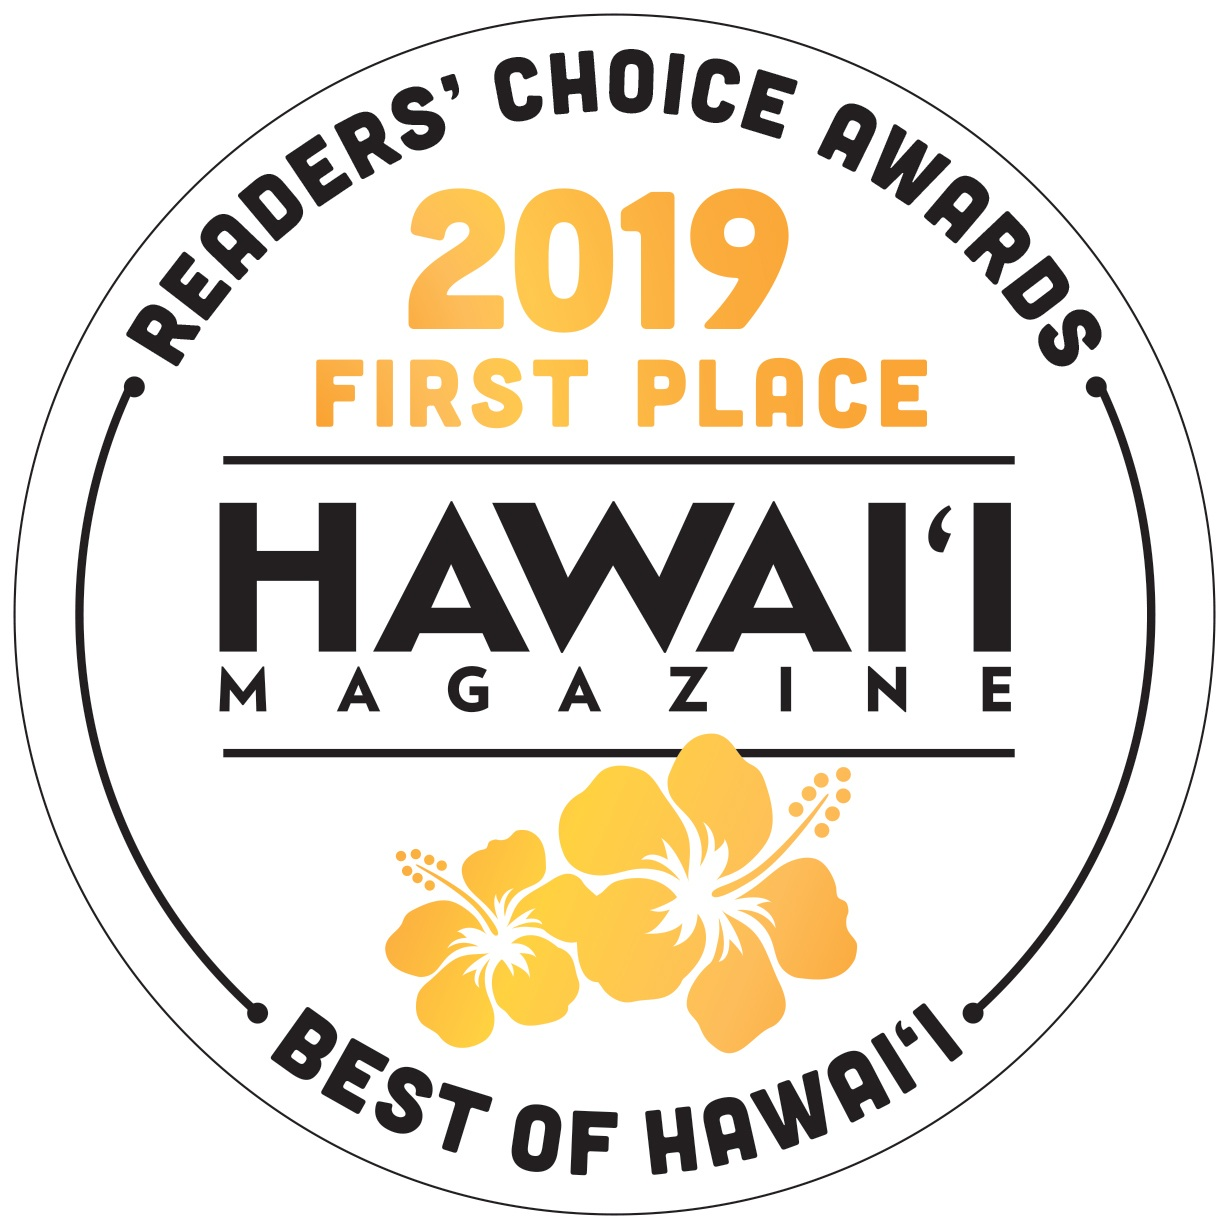 BEST OF THE BEST   Hawaii Magazine  | March 6, 2019  2019 Readers' Choice Awards reveals MokuRoots as the top new restaurant in Hawaii